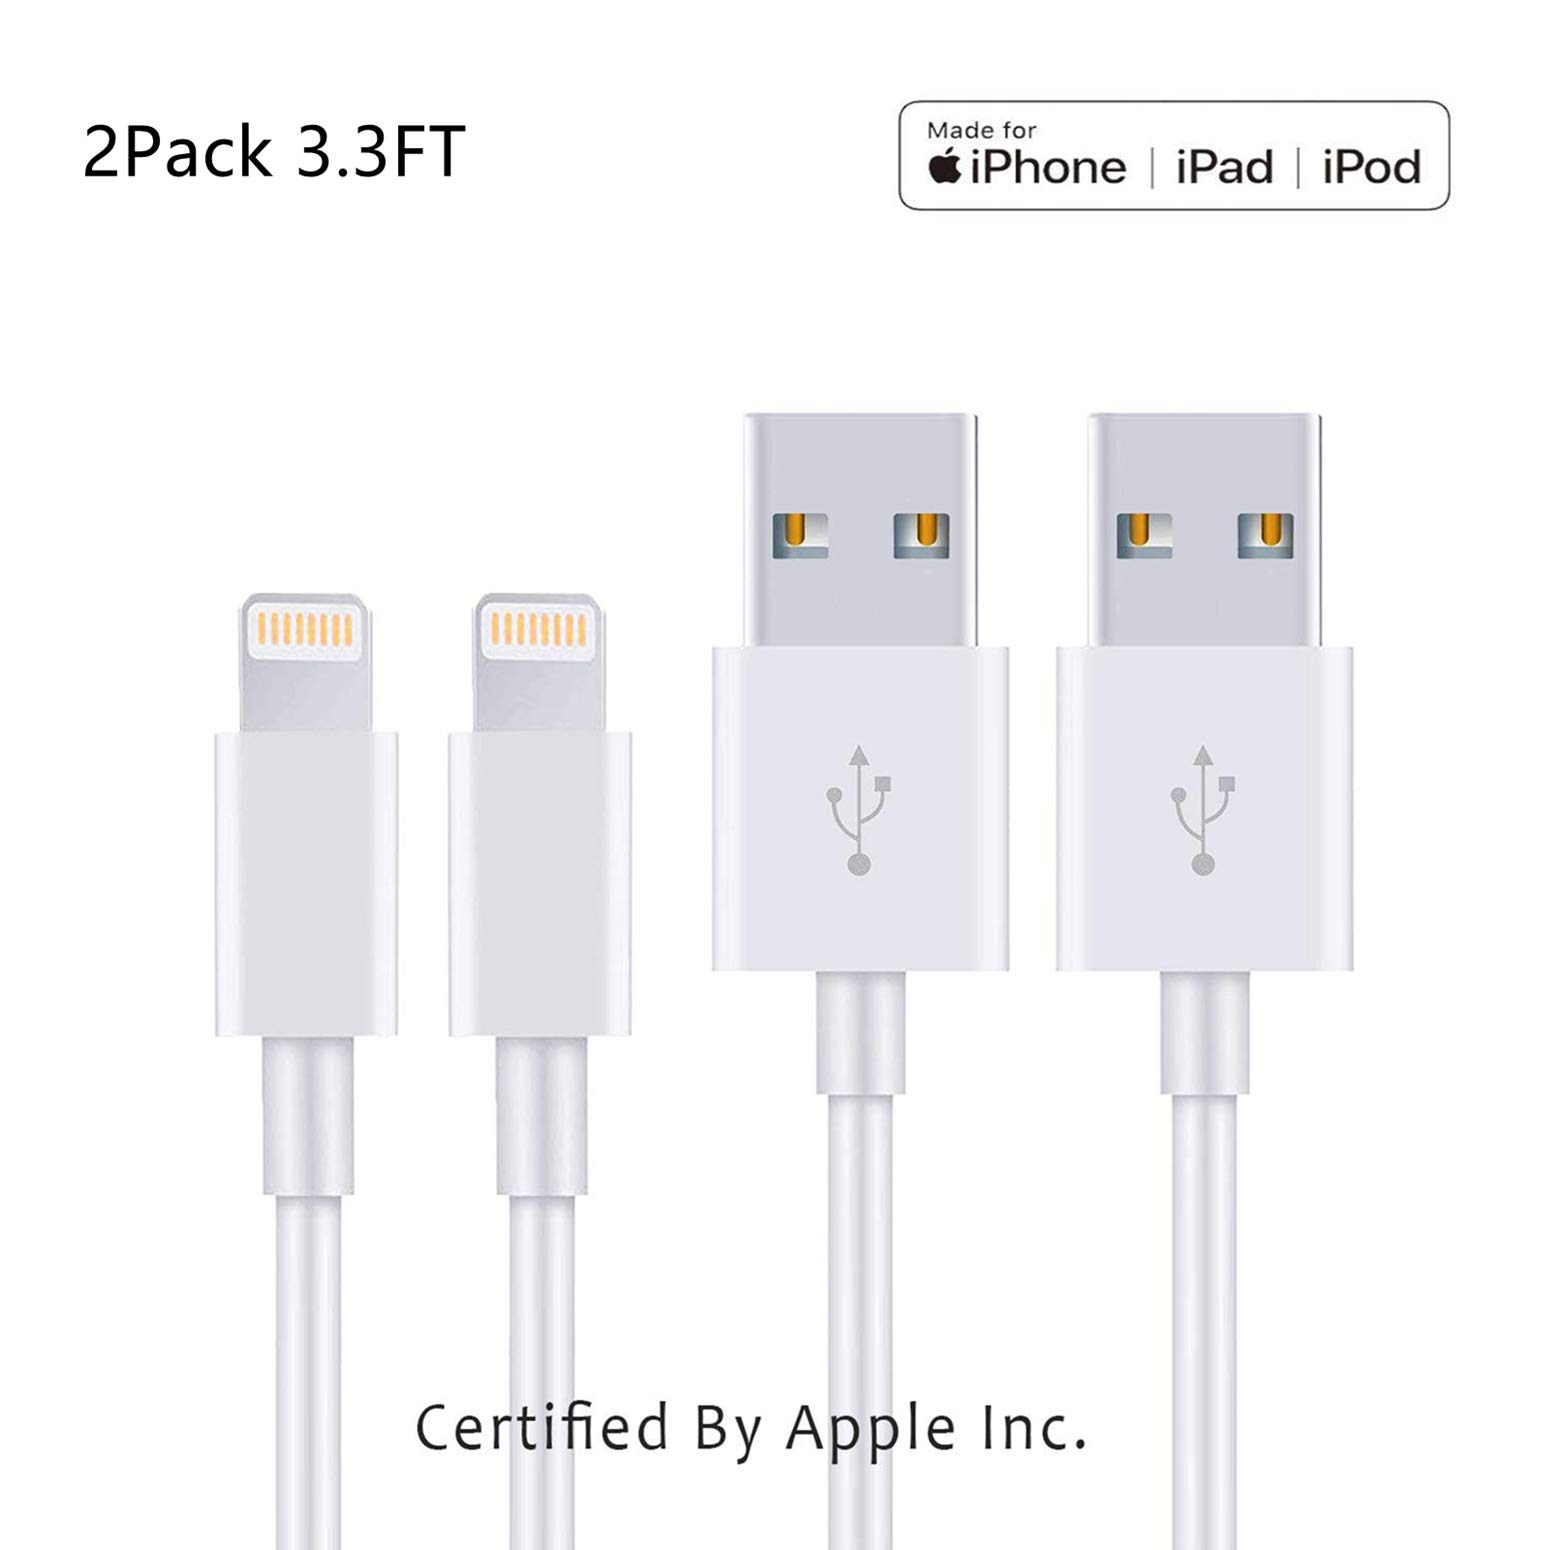 Apple iPhone/iPad Charging/Charger Cord Lightning to USB Cable[Apple MFi Certified] Compatible iPhone X/8/7/6s/6/plus/5s/5c/SE,iPad Pro/Air/Mini,iPod Touch(White 1M/3.3FT) Original Certified (2 Pack)